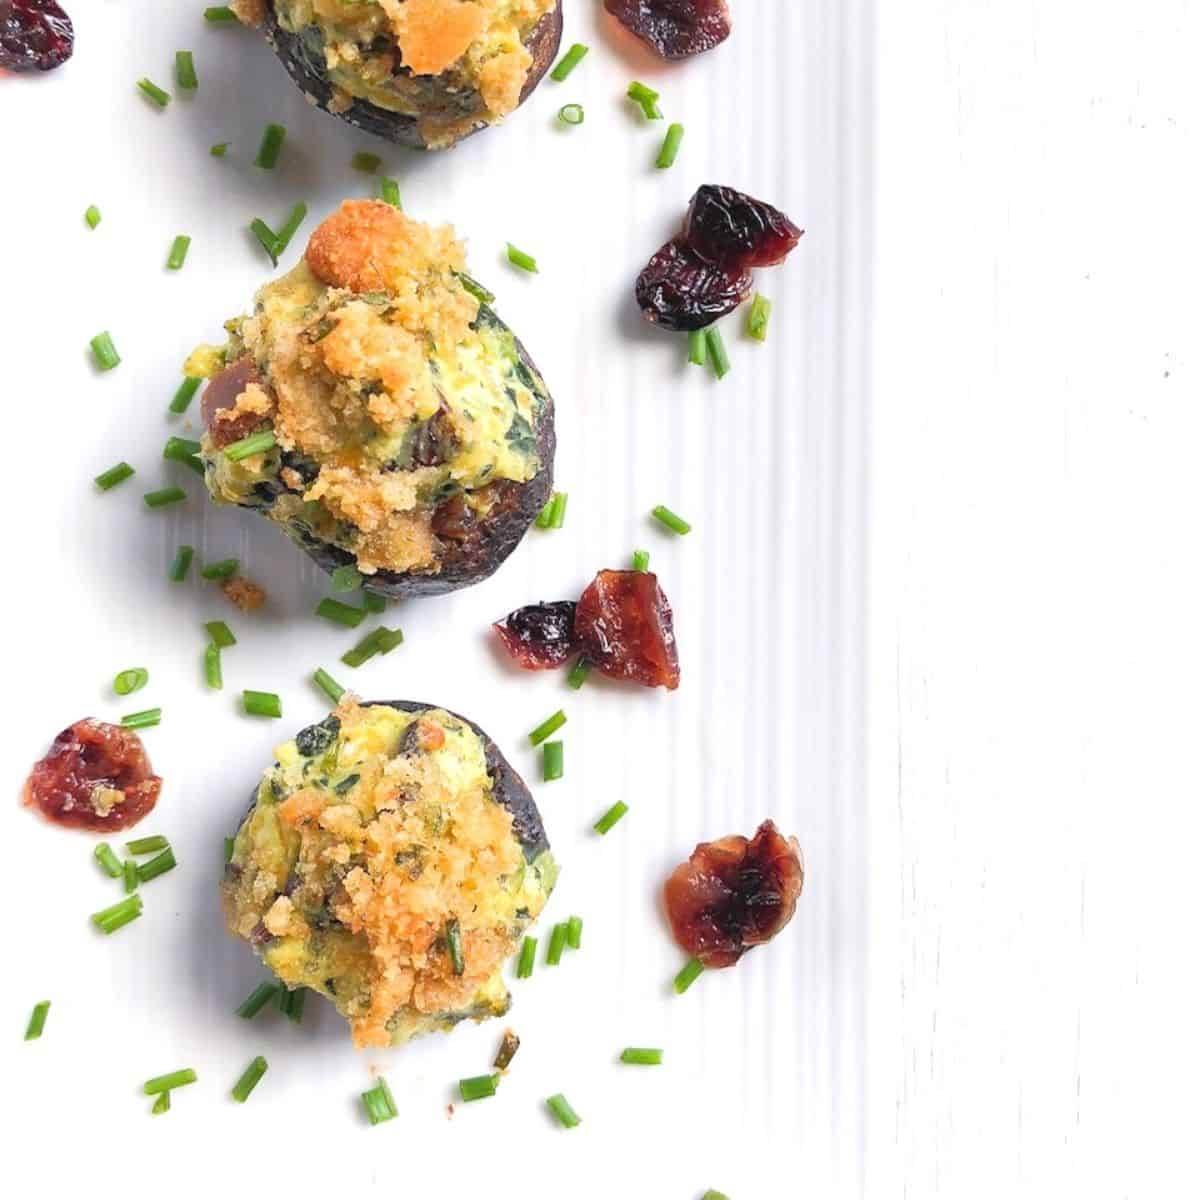 kale and cream cheese stuffed mushrooms on a plate